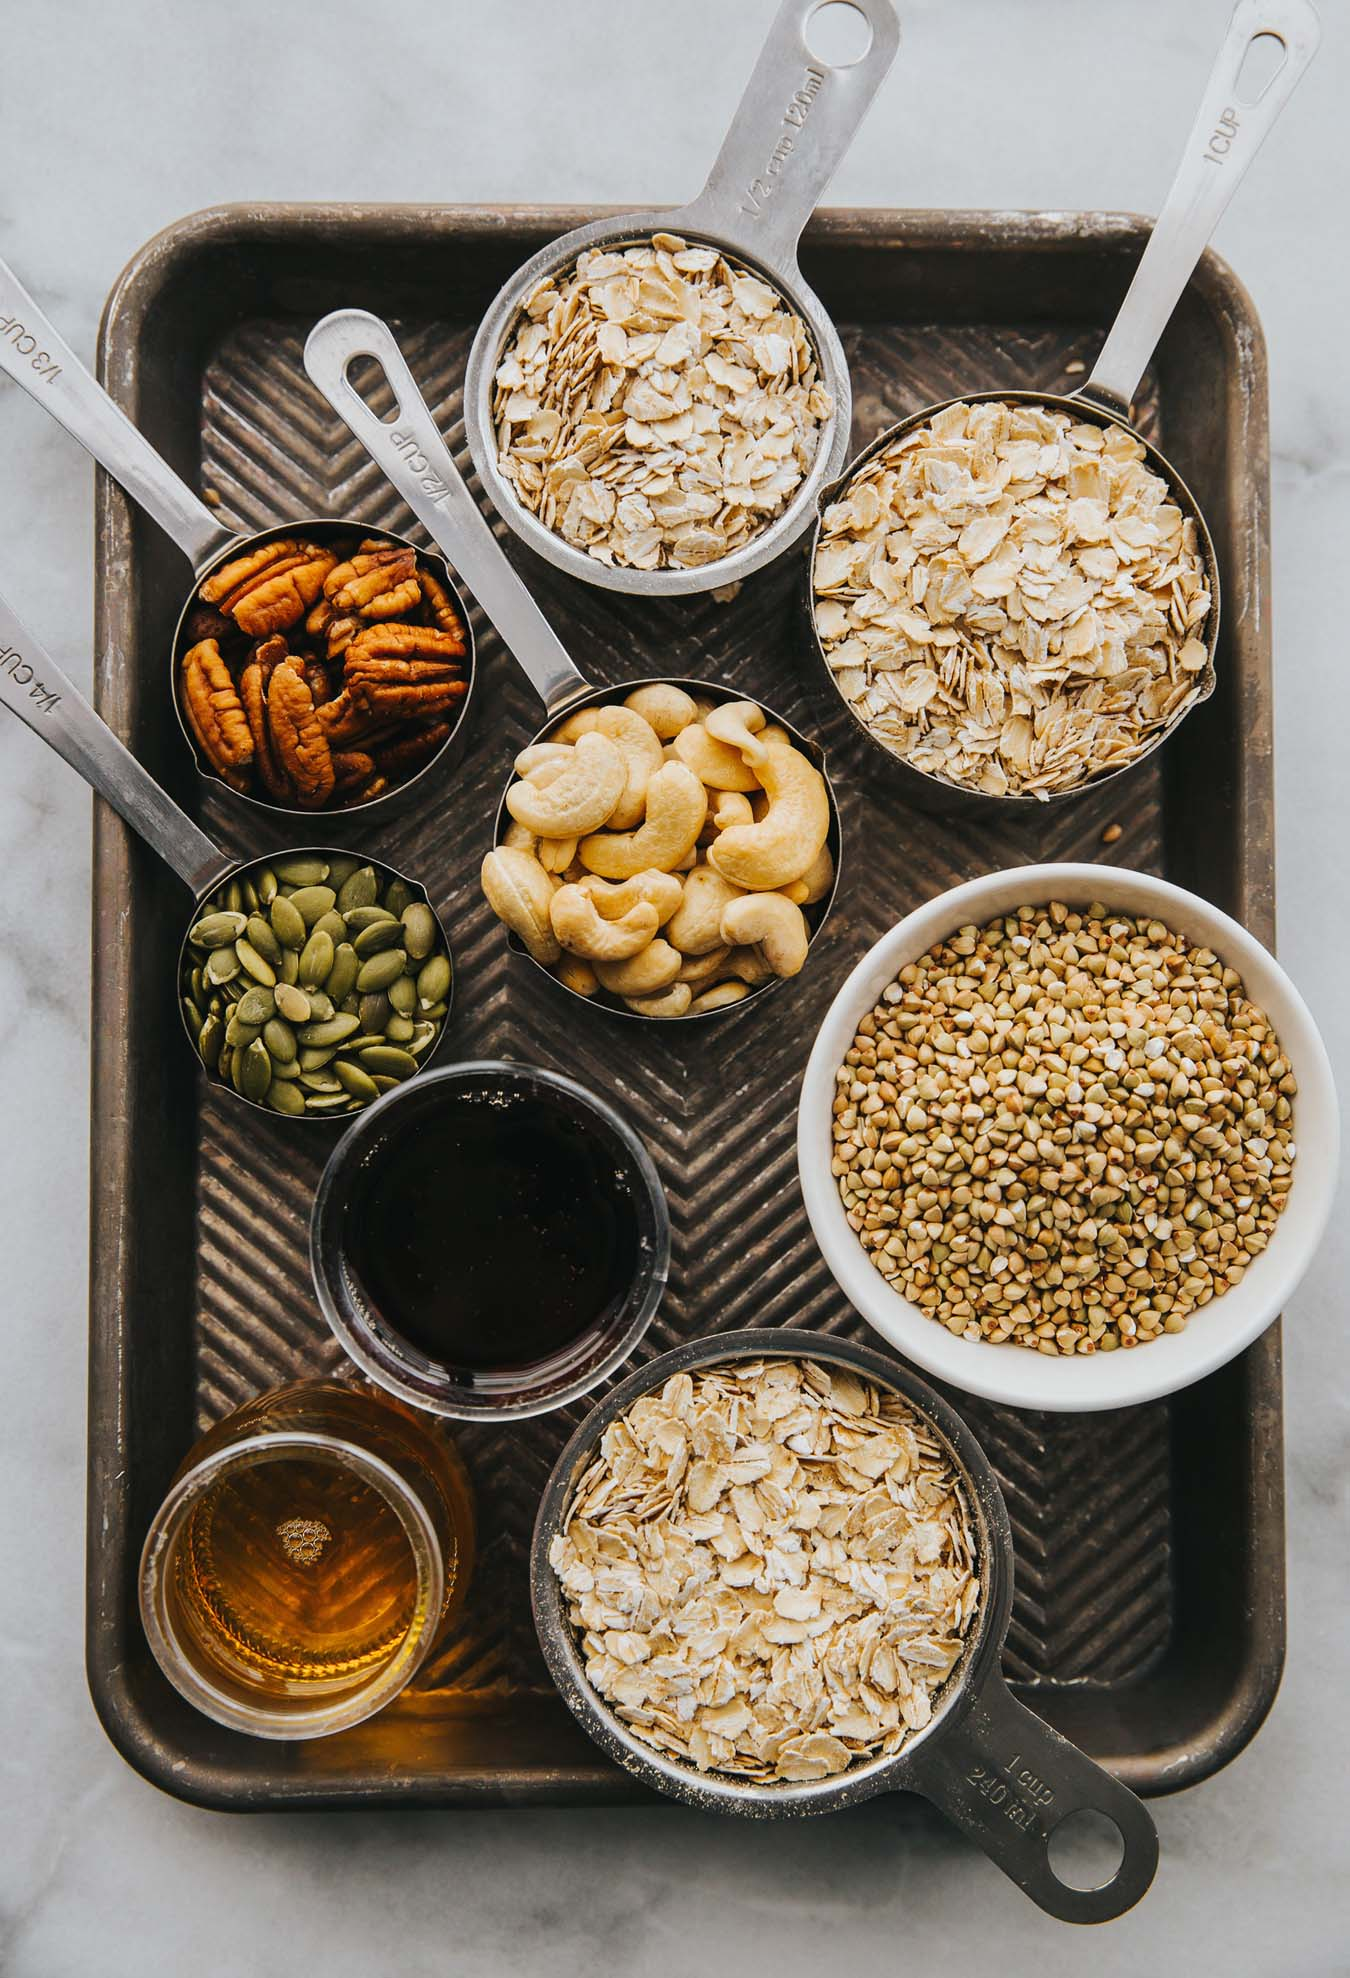 On an old baking sheet are small bowls with various ingredients such as cashews, buckwheat, oatmeal, pecans and pumpkin seeds.